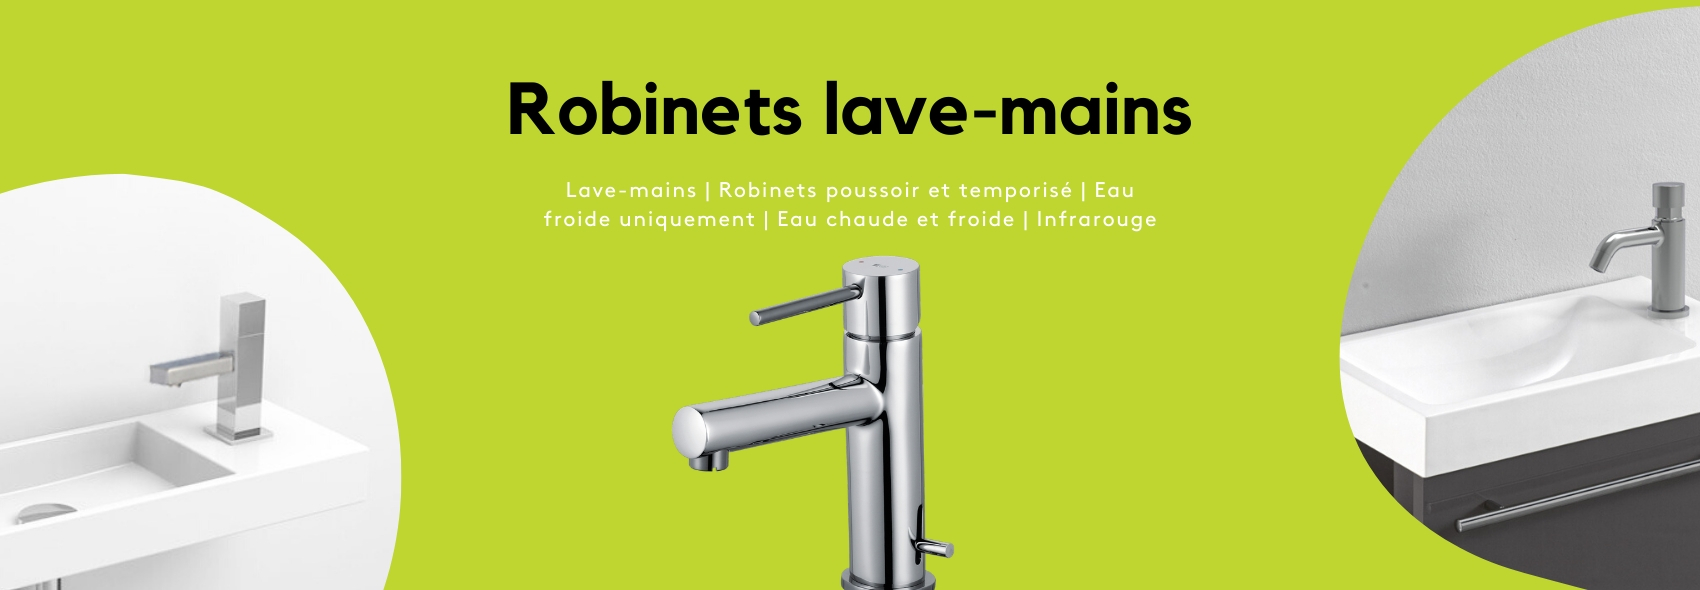 Robinets lave-mains